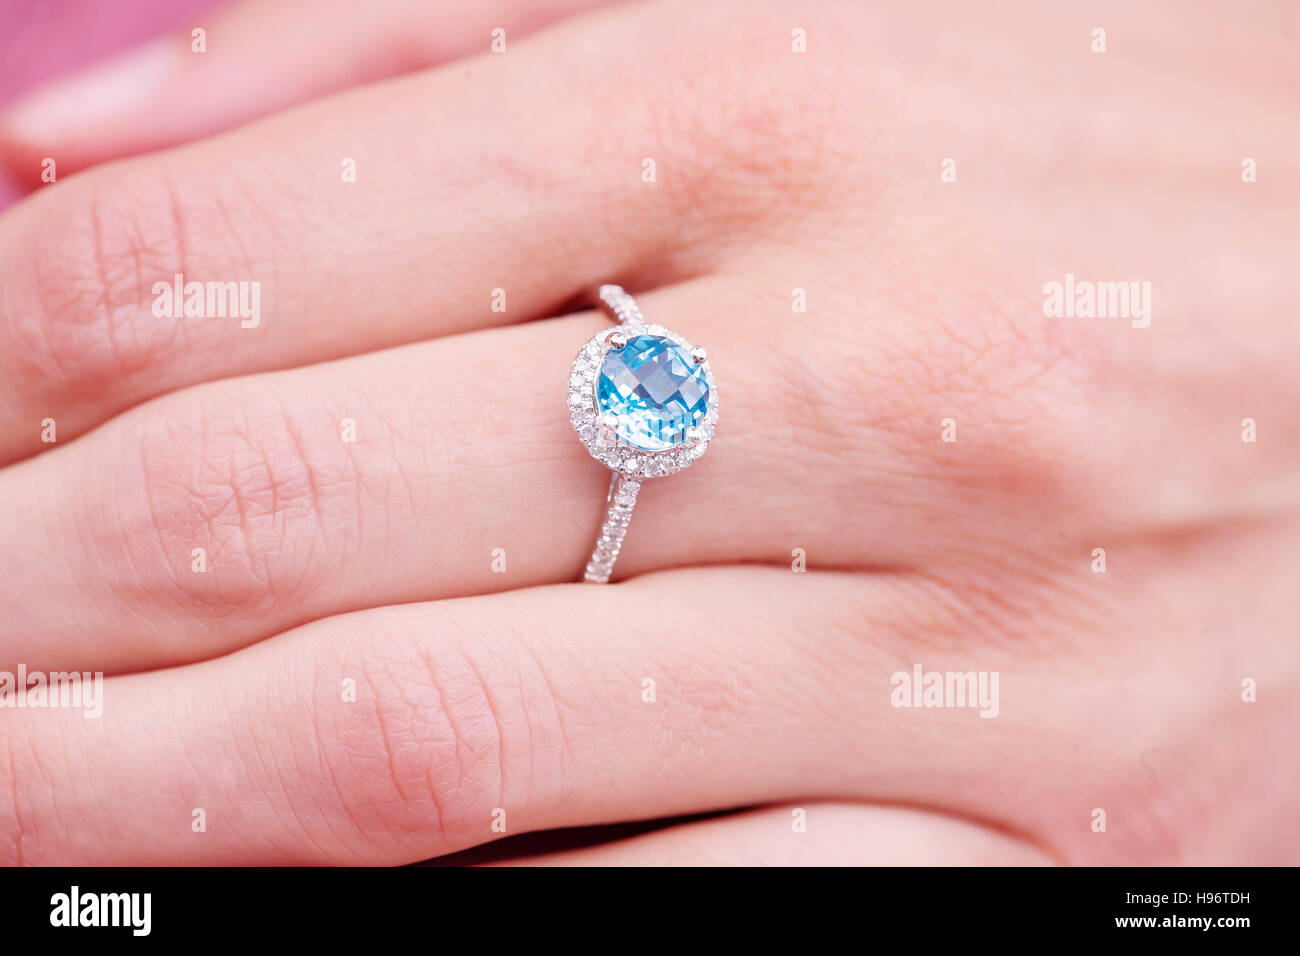 Wedding Ring Hand Stock Photos & Wedding Ring Hand Stock Images - Alamy